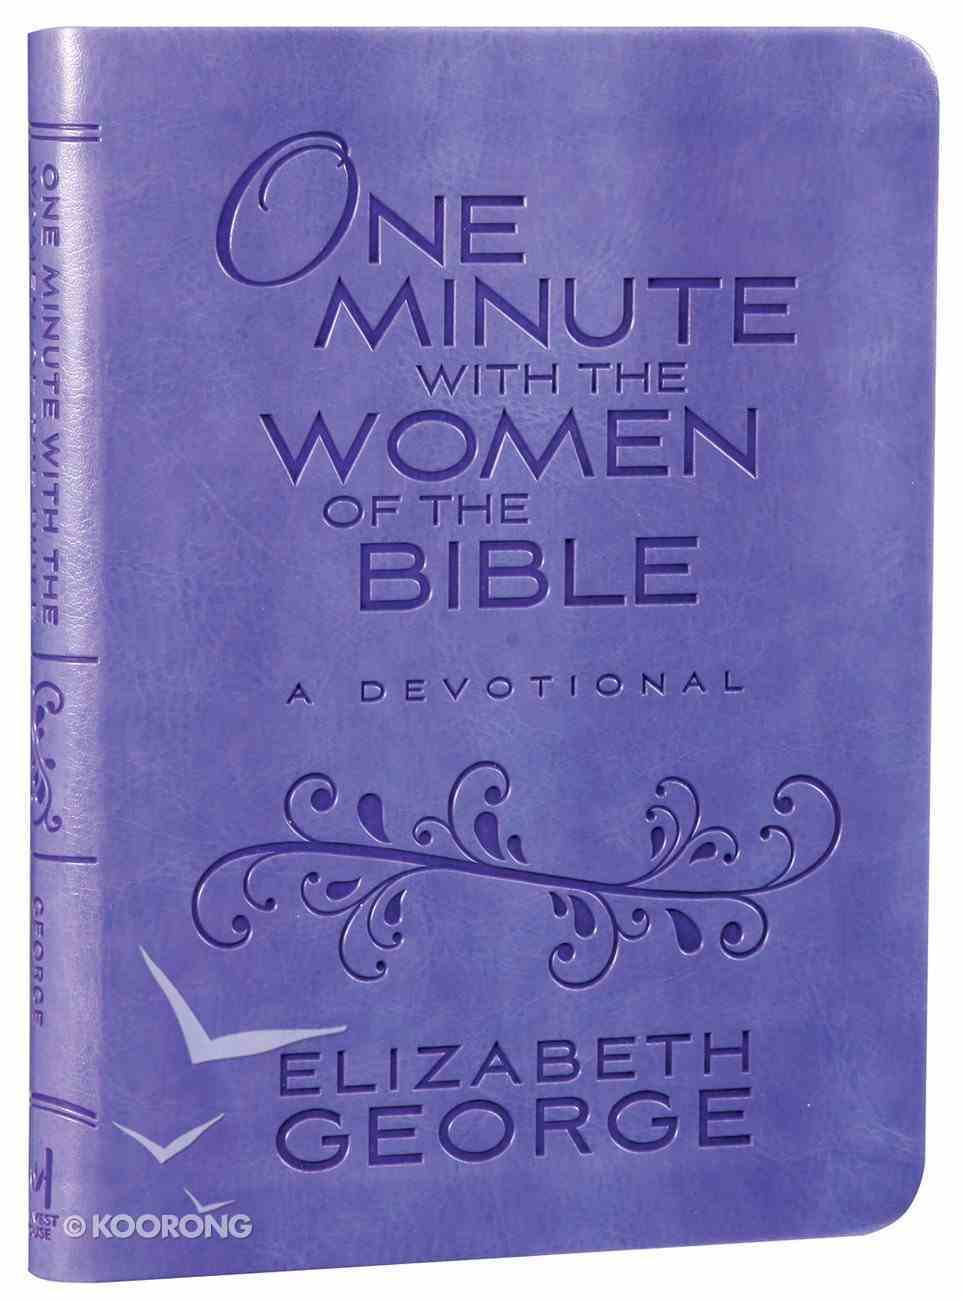 One Minute With the Women of the Bible: A Devotional Imitation Leather